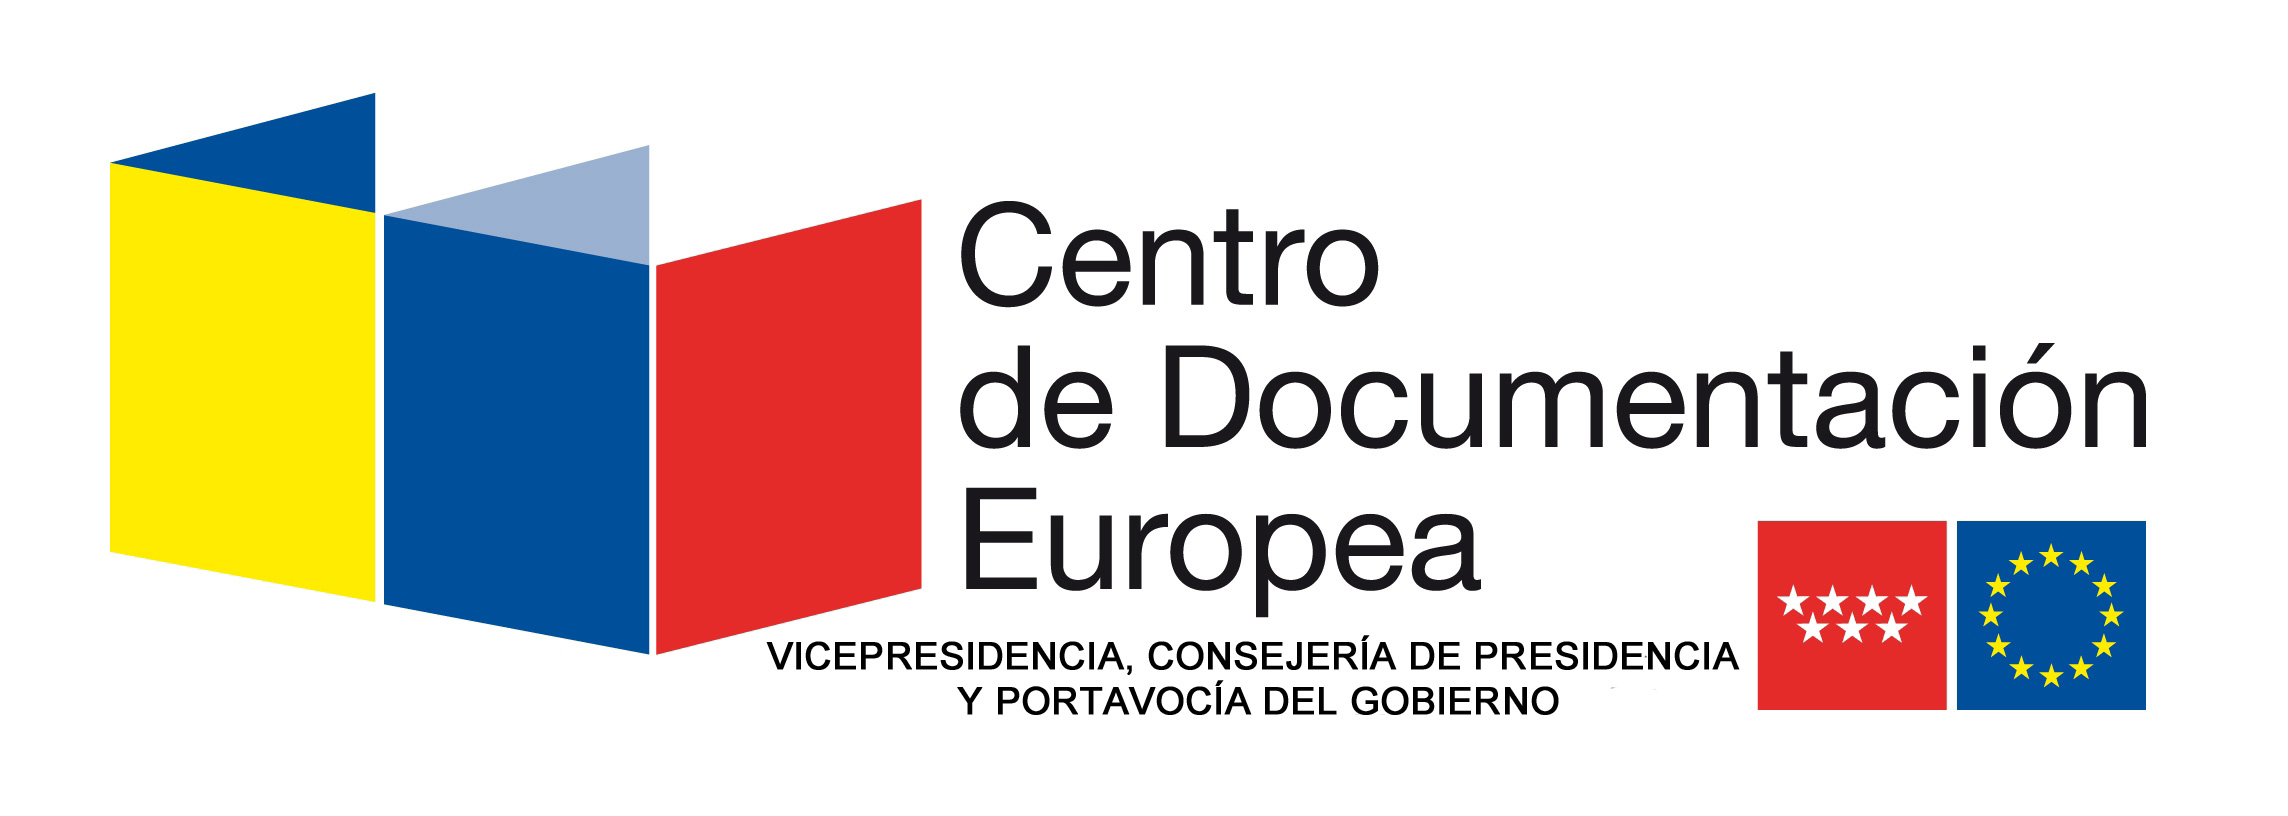 Logotipo del Centro De Documentación Europea